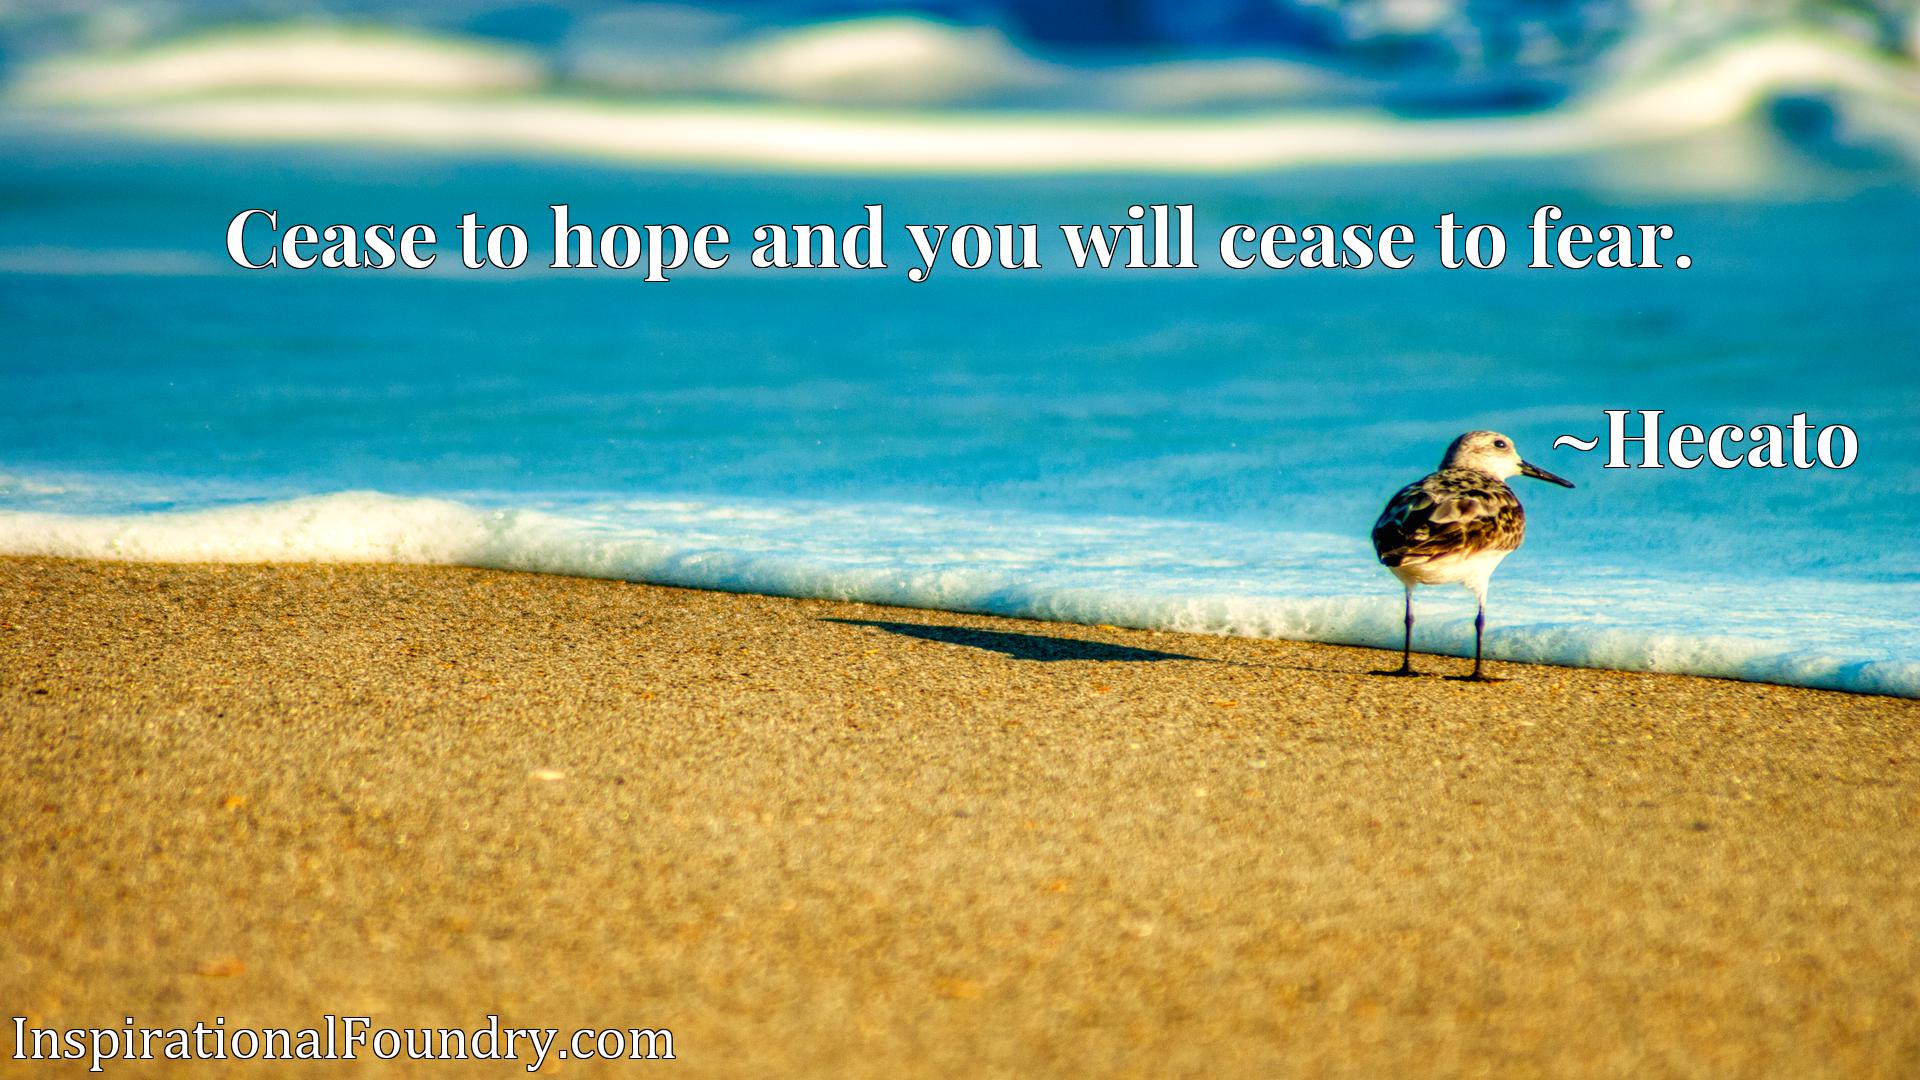 Cease to hope and you will cease to fear.